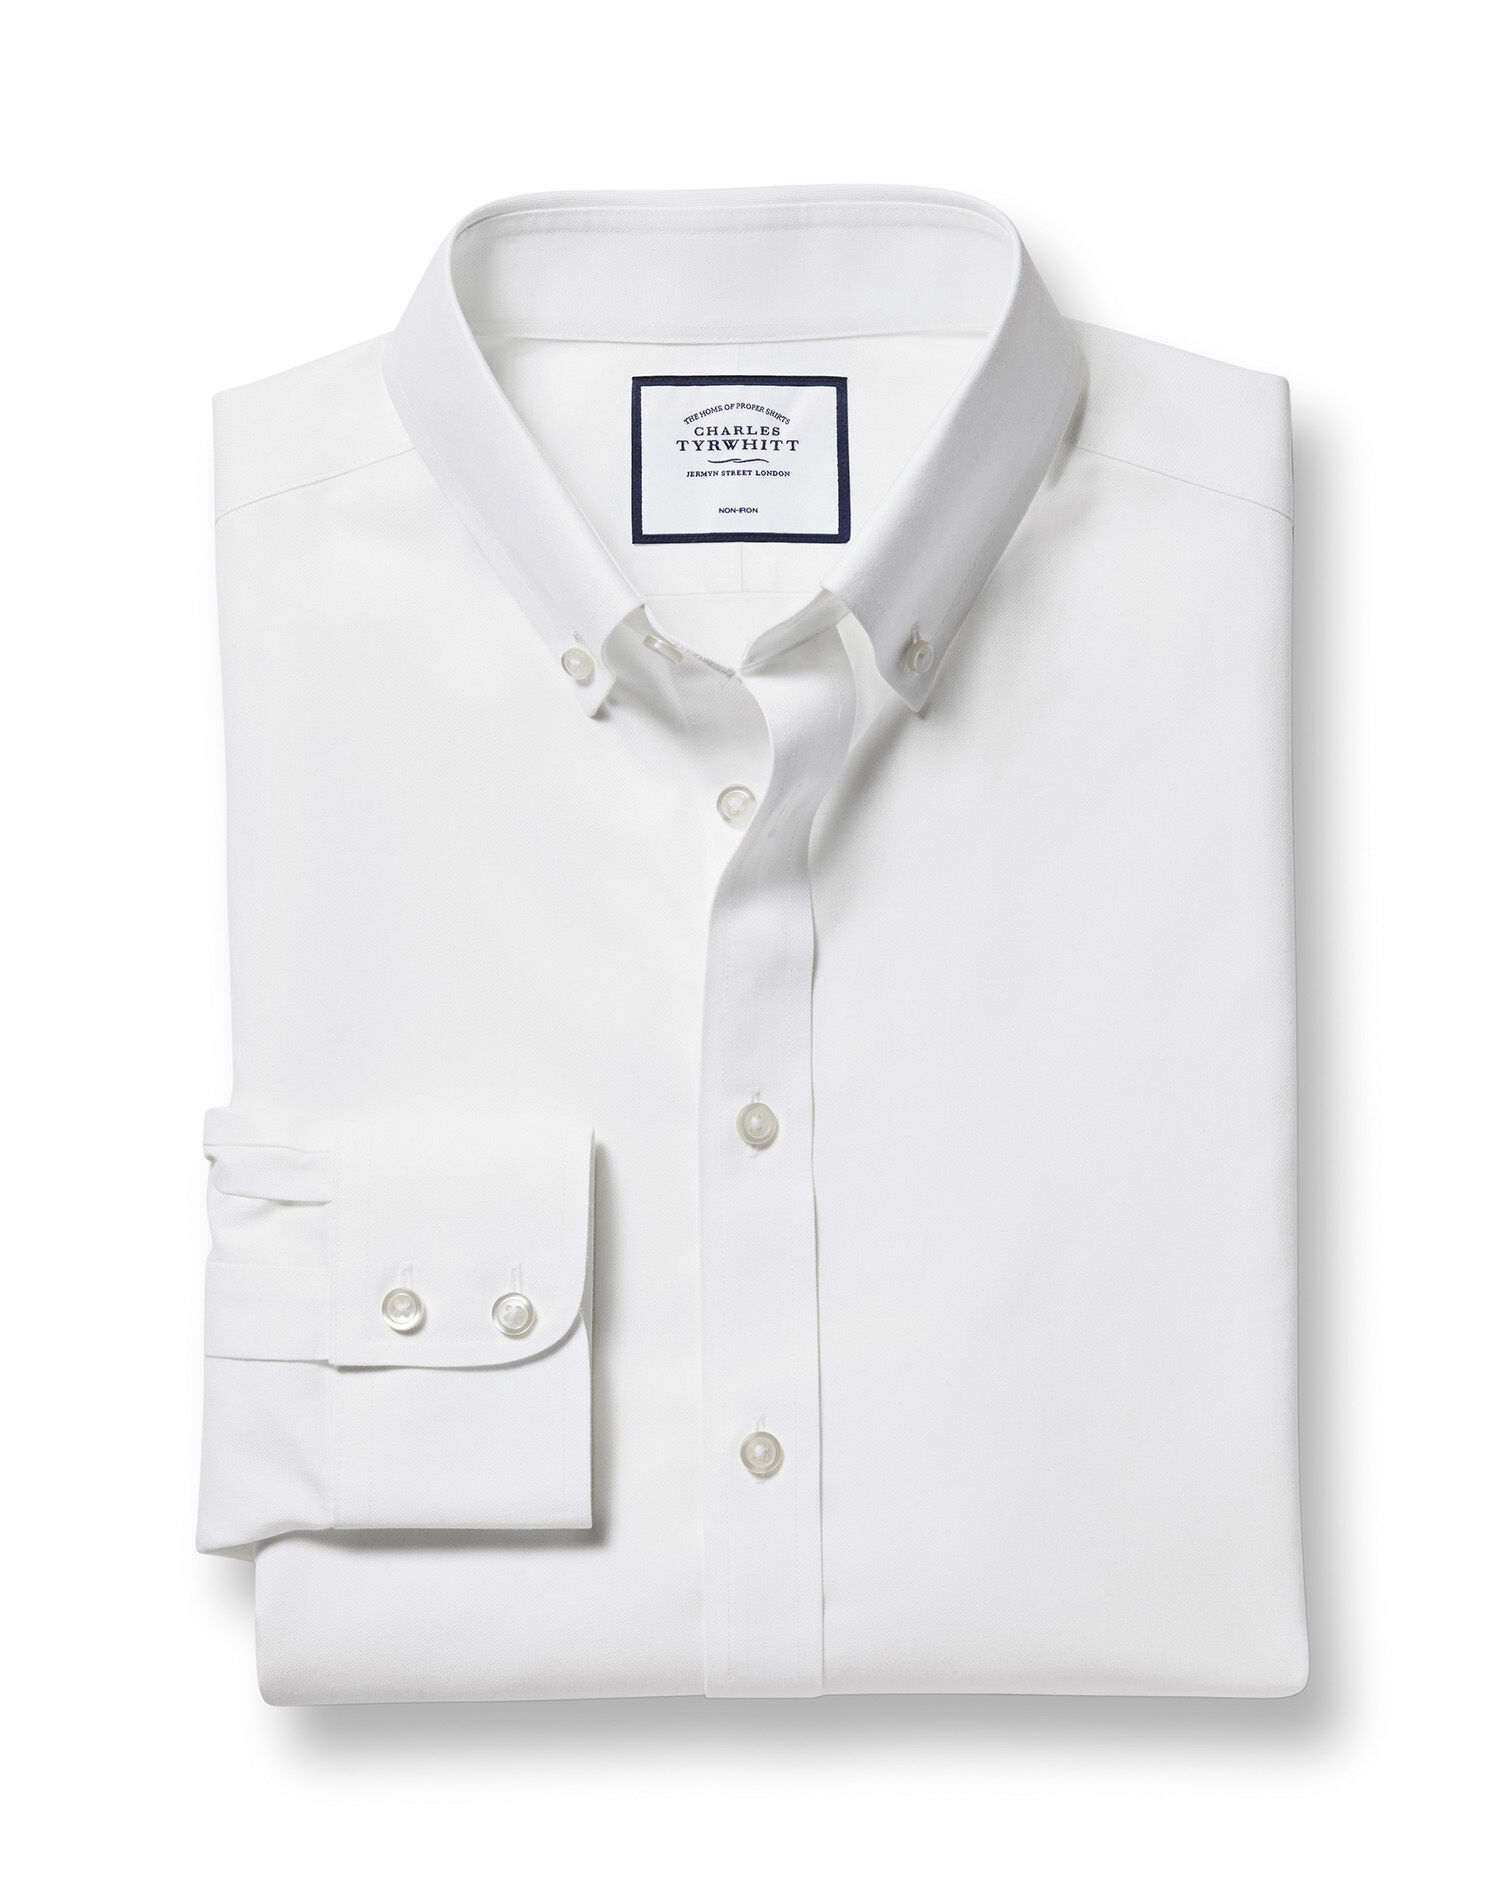 Slim Fit Button-Down Non-Iron Twill White Cotton Formal Shirt Single Cuff Size 15.5/34 by Charles Ty